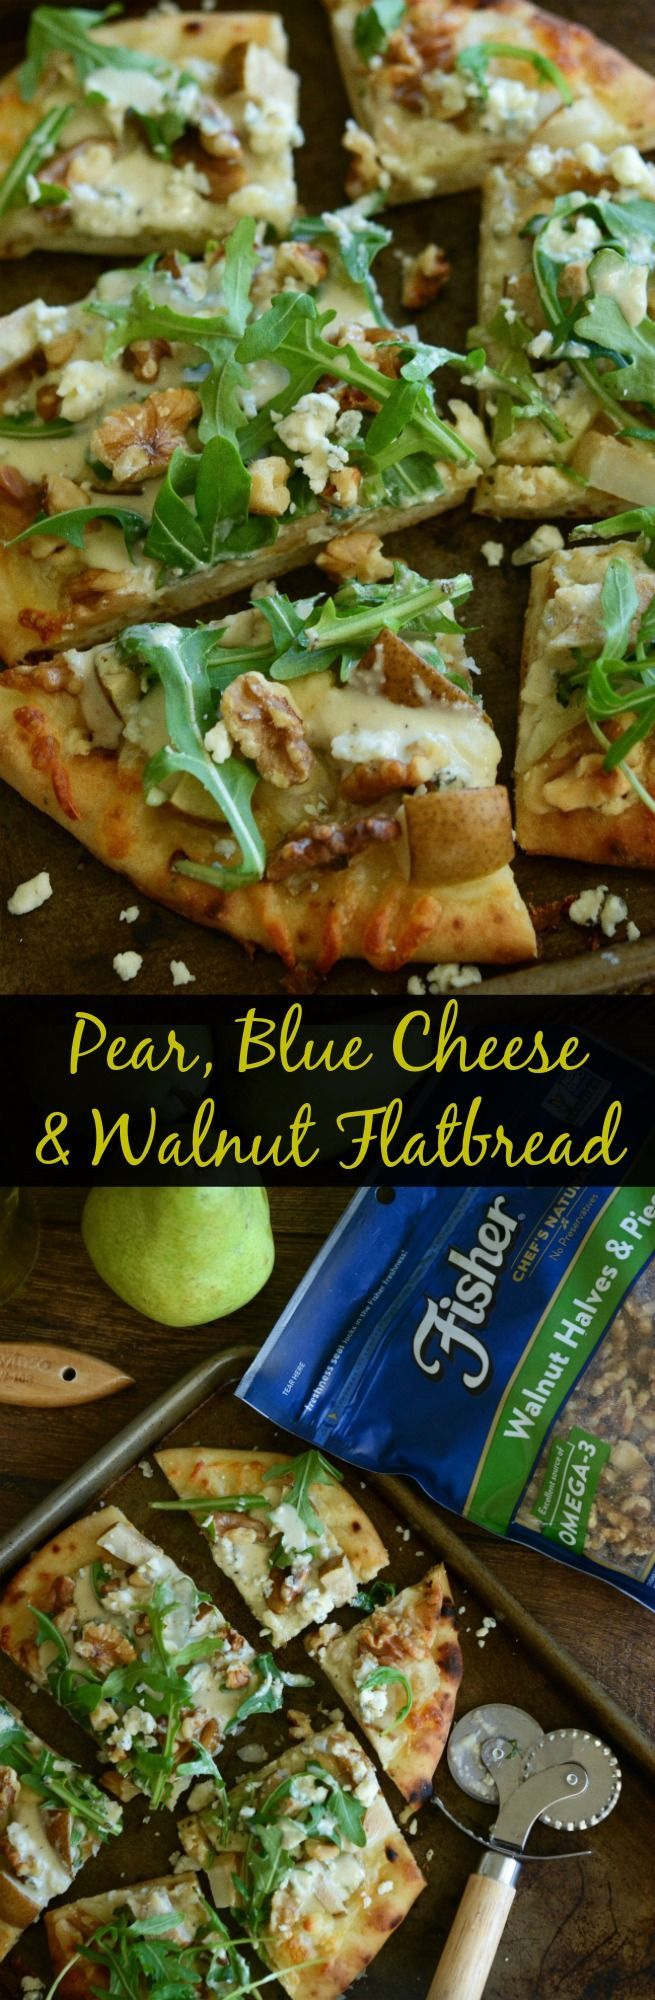 Pear, Blue Cheese & Walnut Flatbread - ready in 20 minutes!